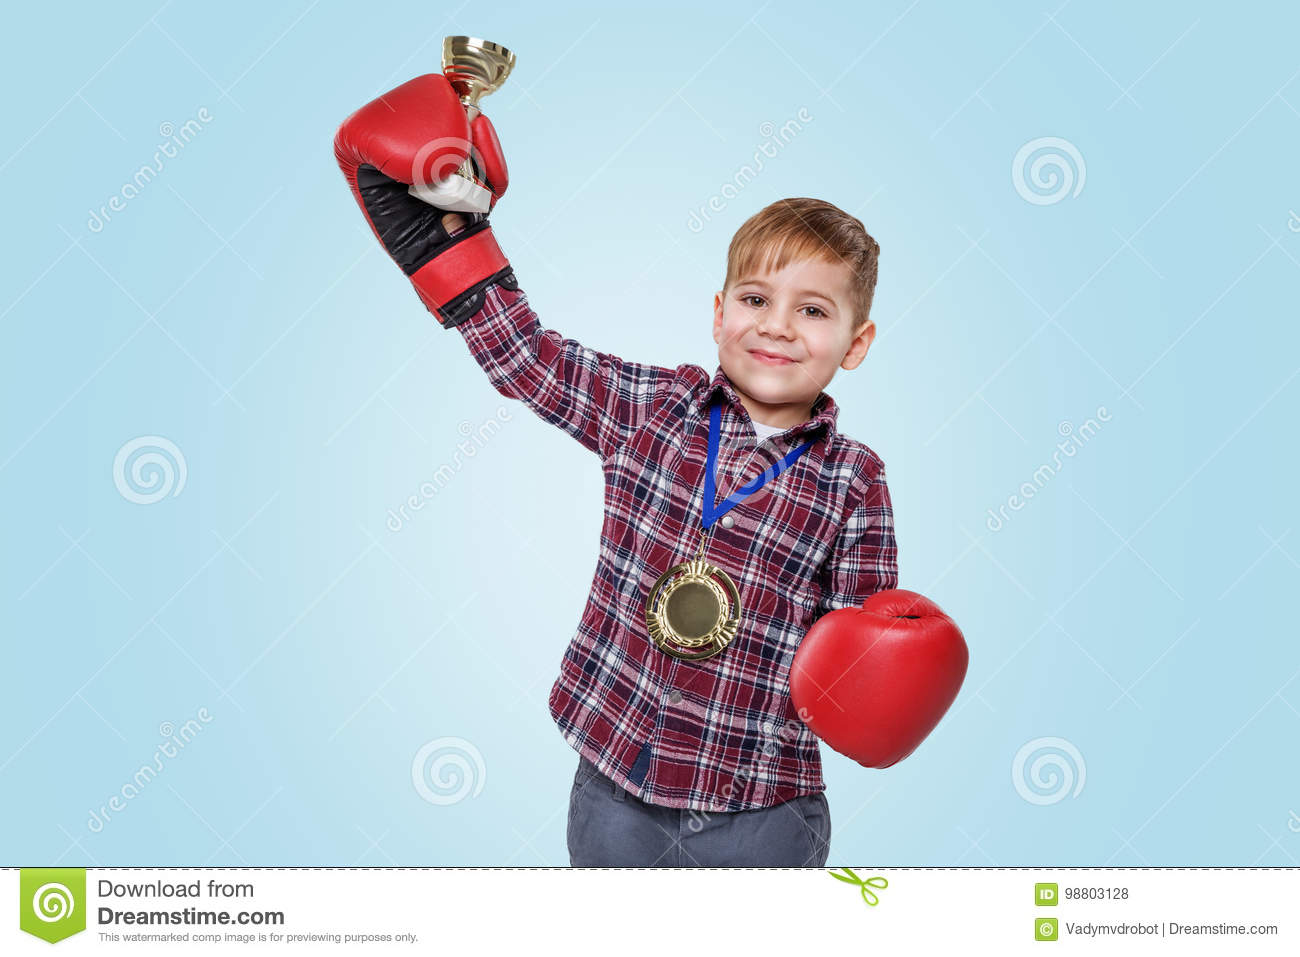 Boy wearing boxing gloves and celebrating success with golden trophy